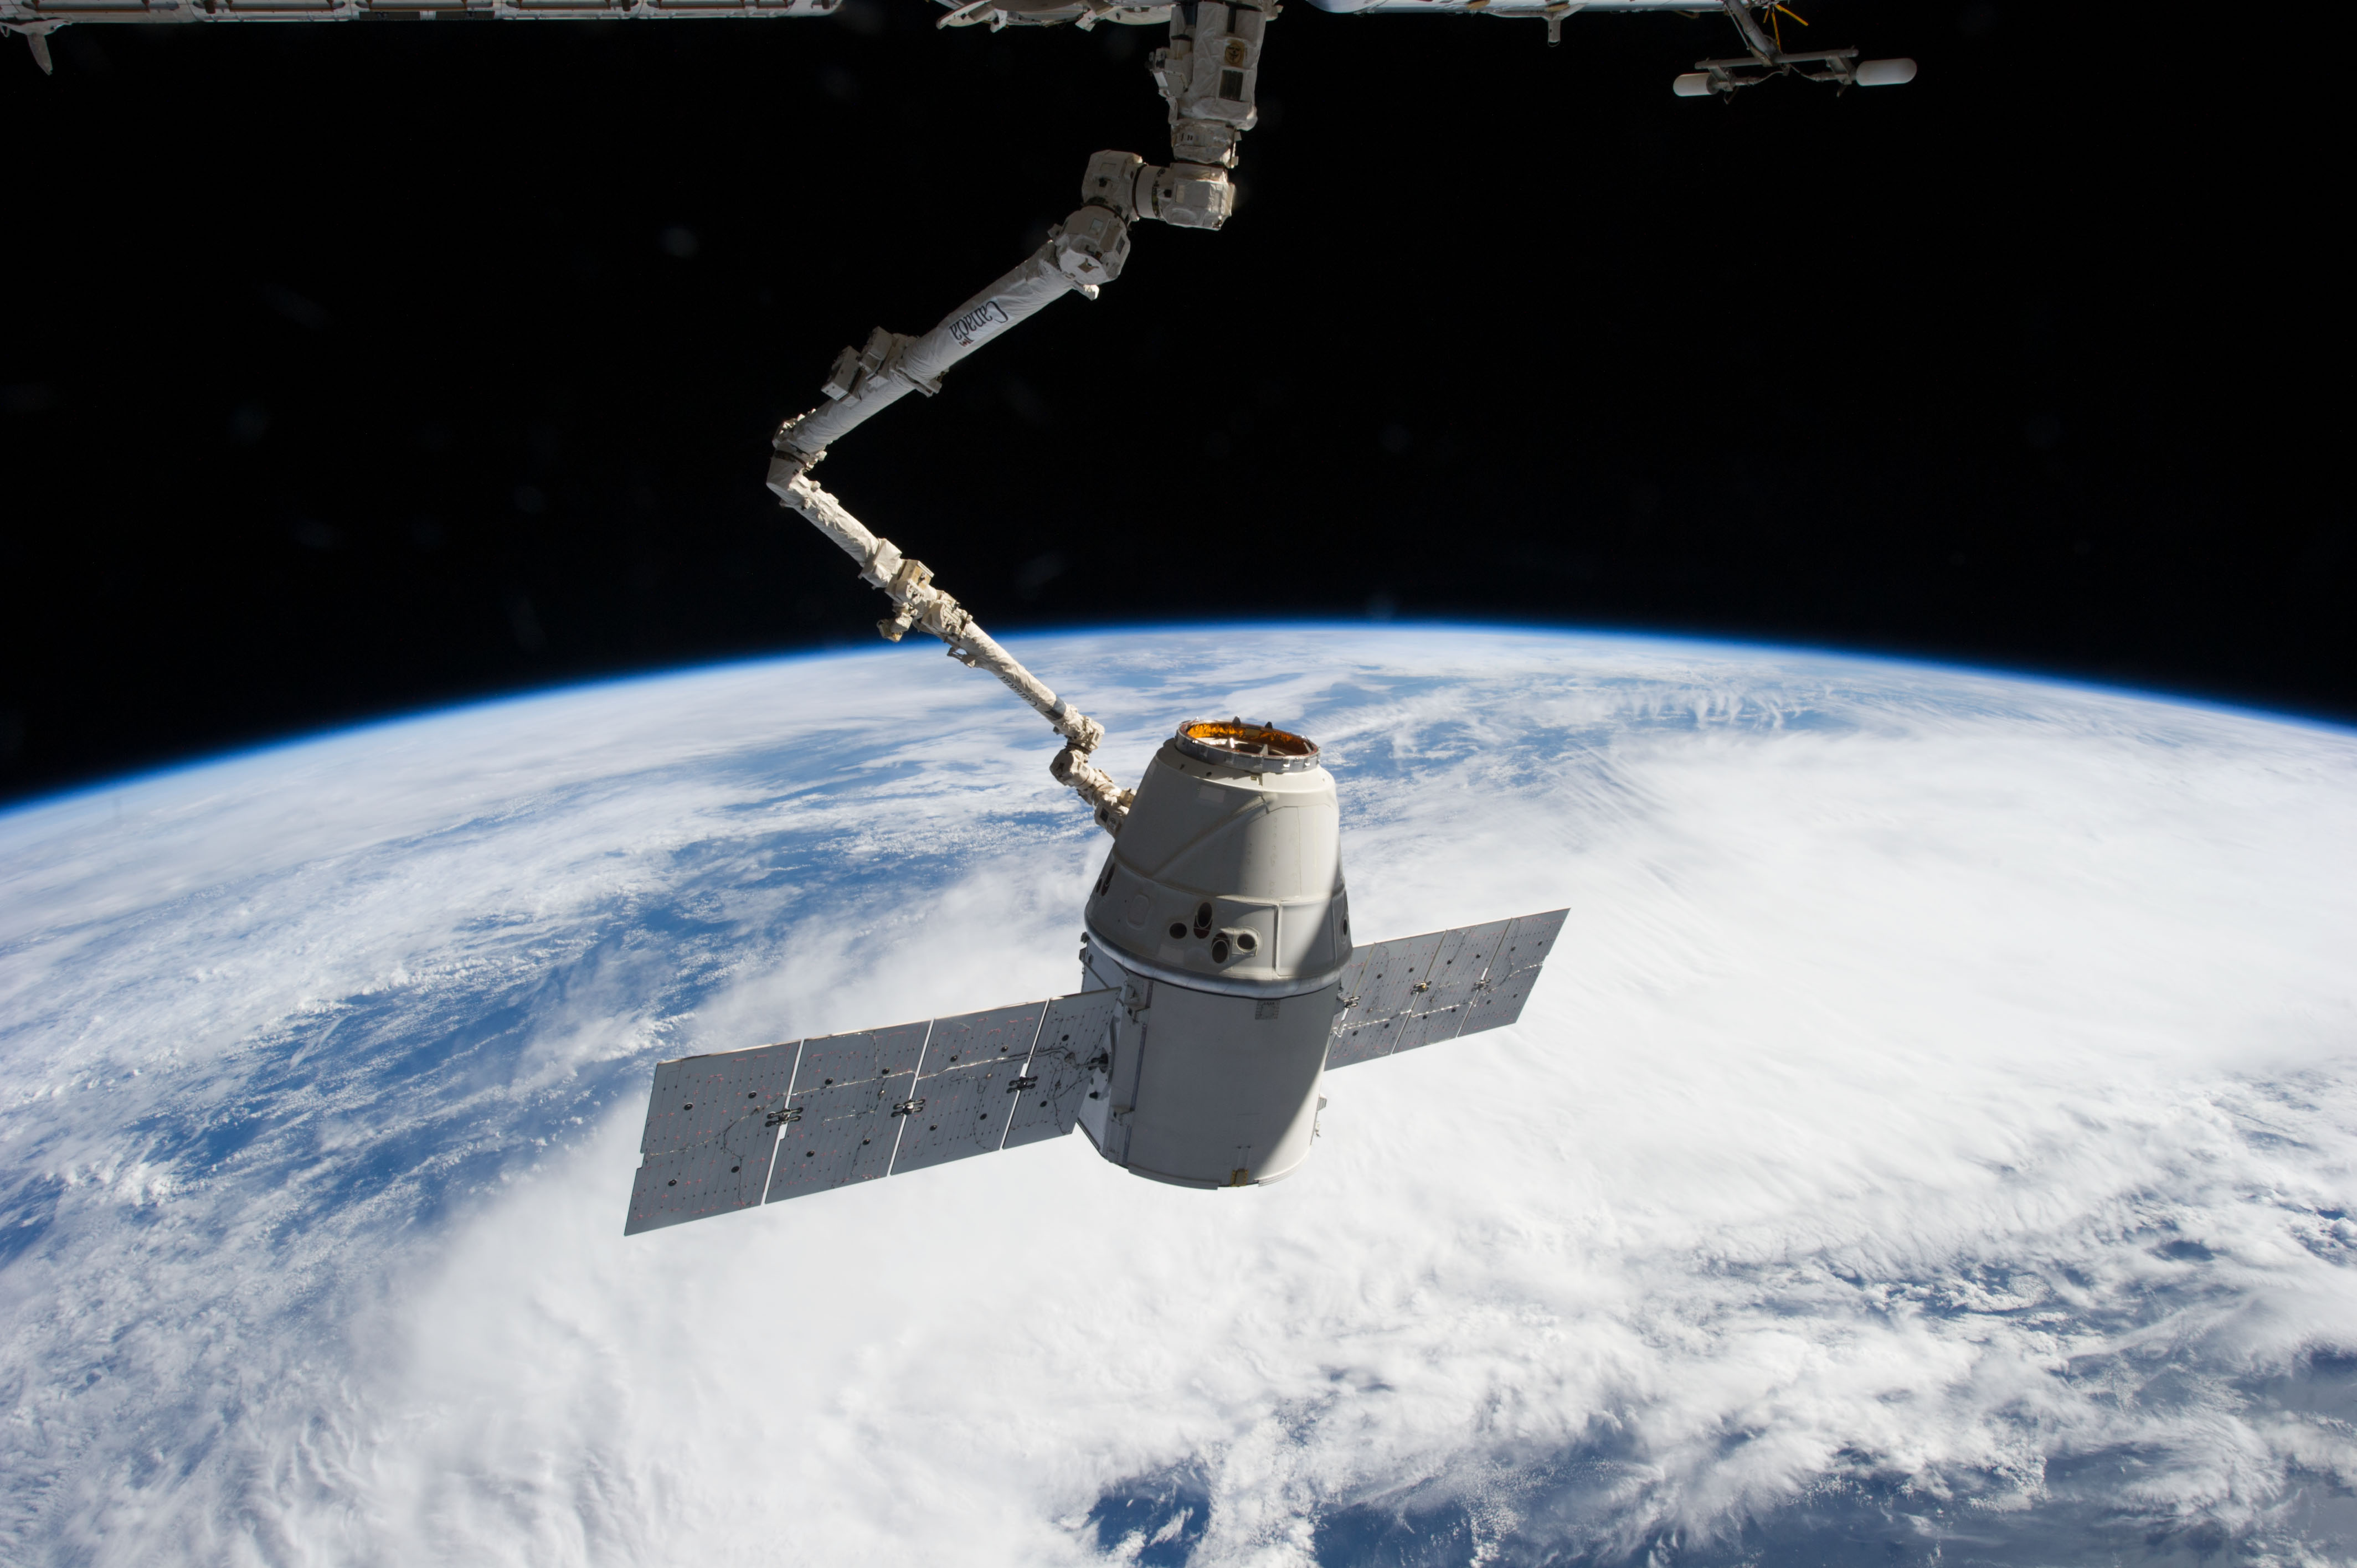 Best 51 SpaceX Dragon Wallpaper on HipWallpaper Awesome Dragon 4256x2832